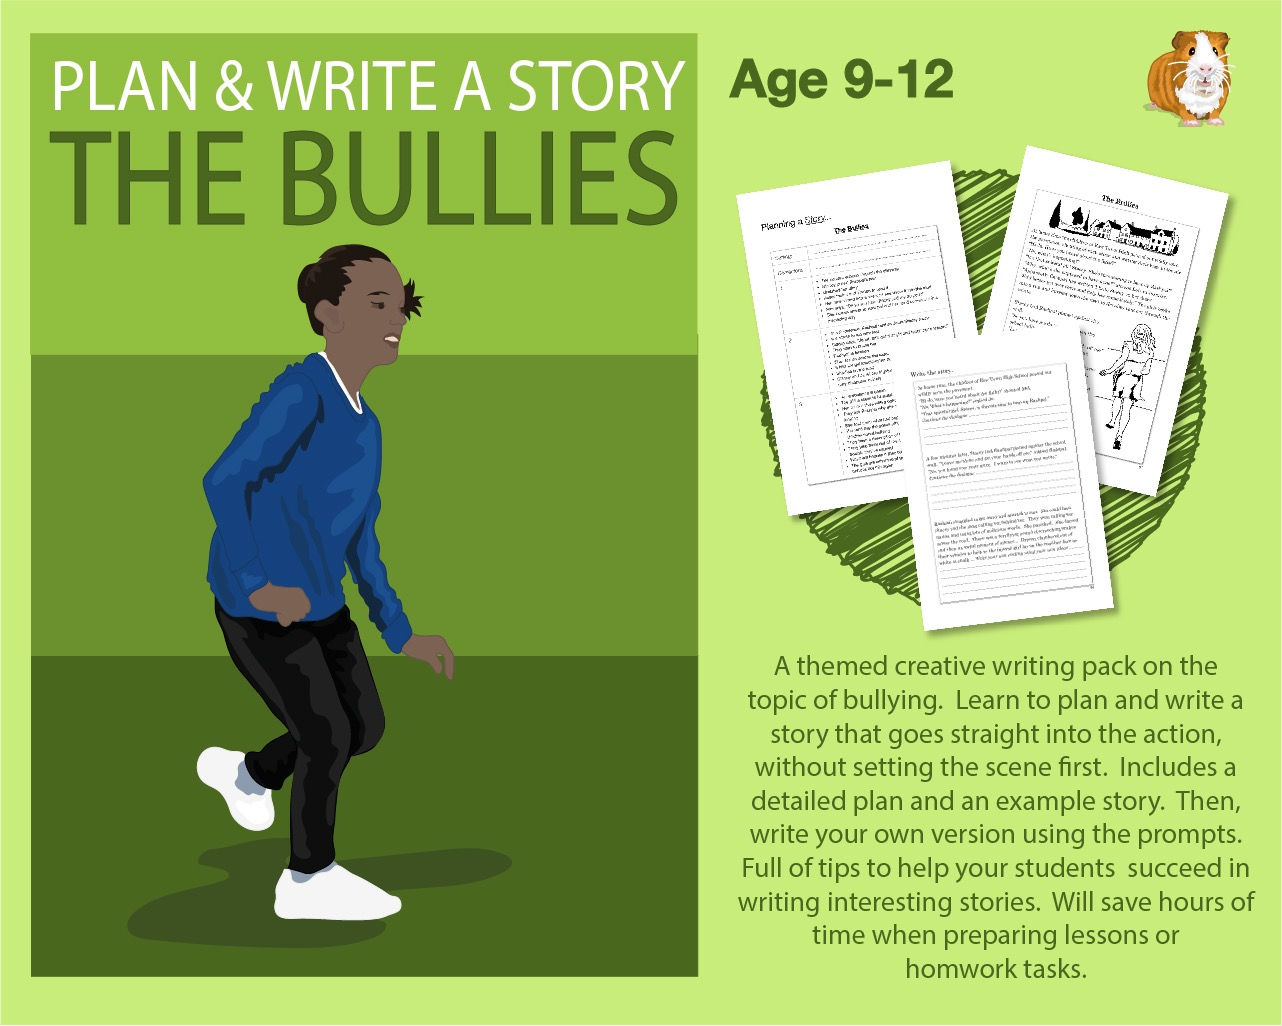 Plan And Write A Story Called 'The Bullies' (9-12 years)